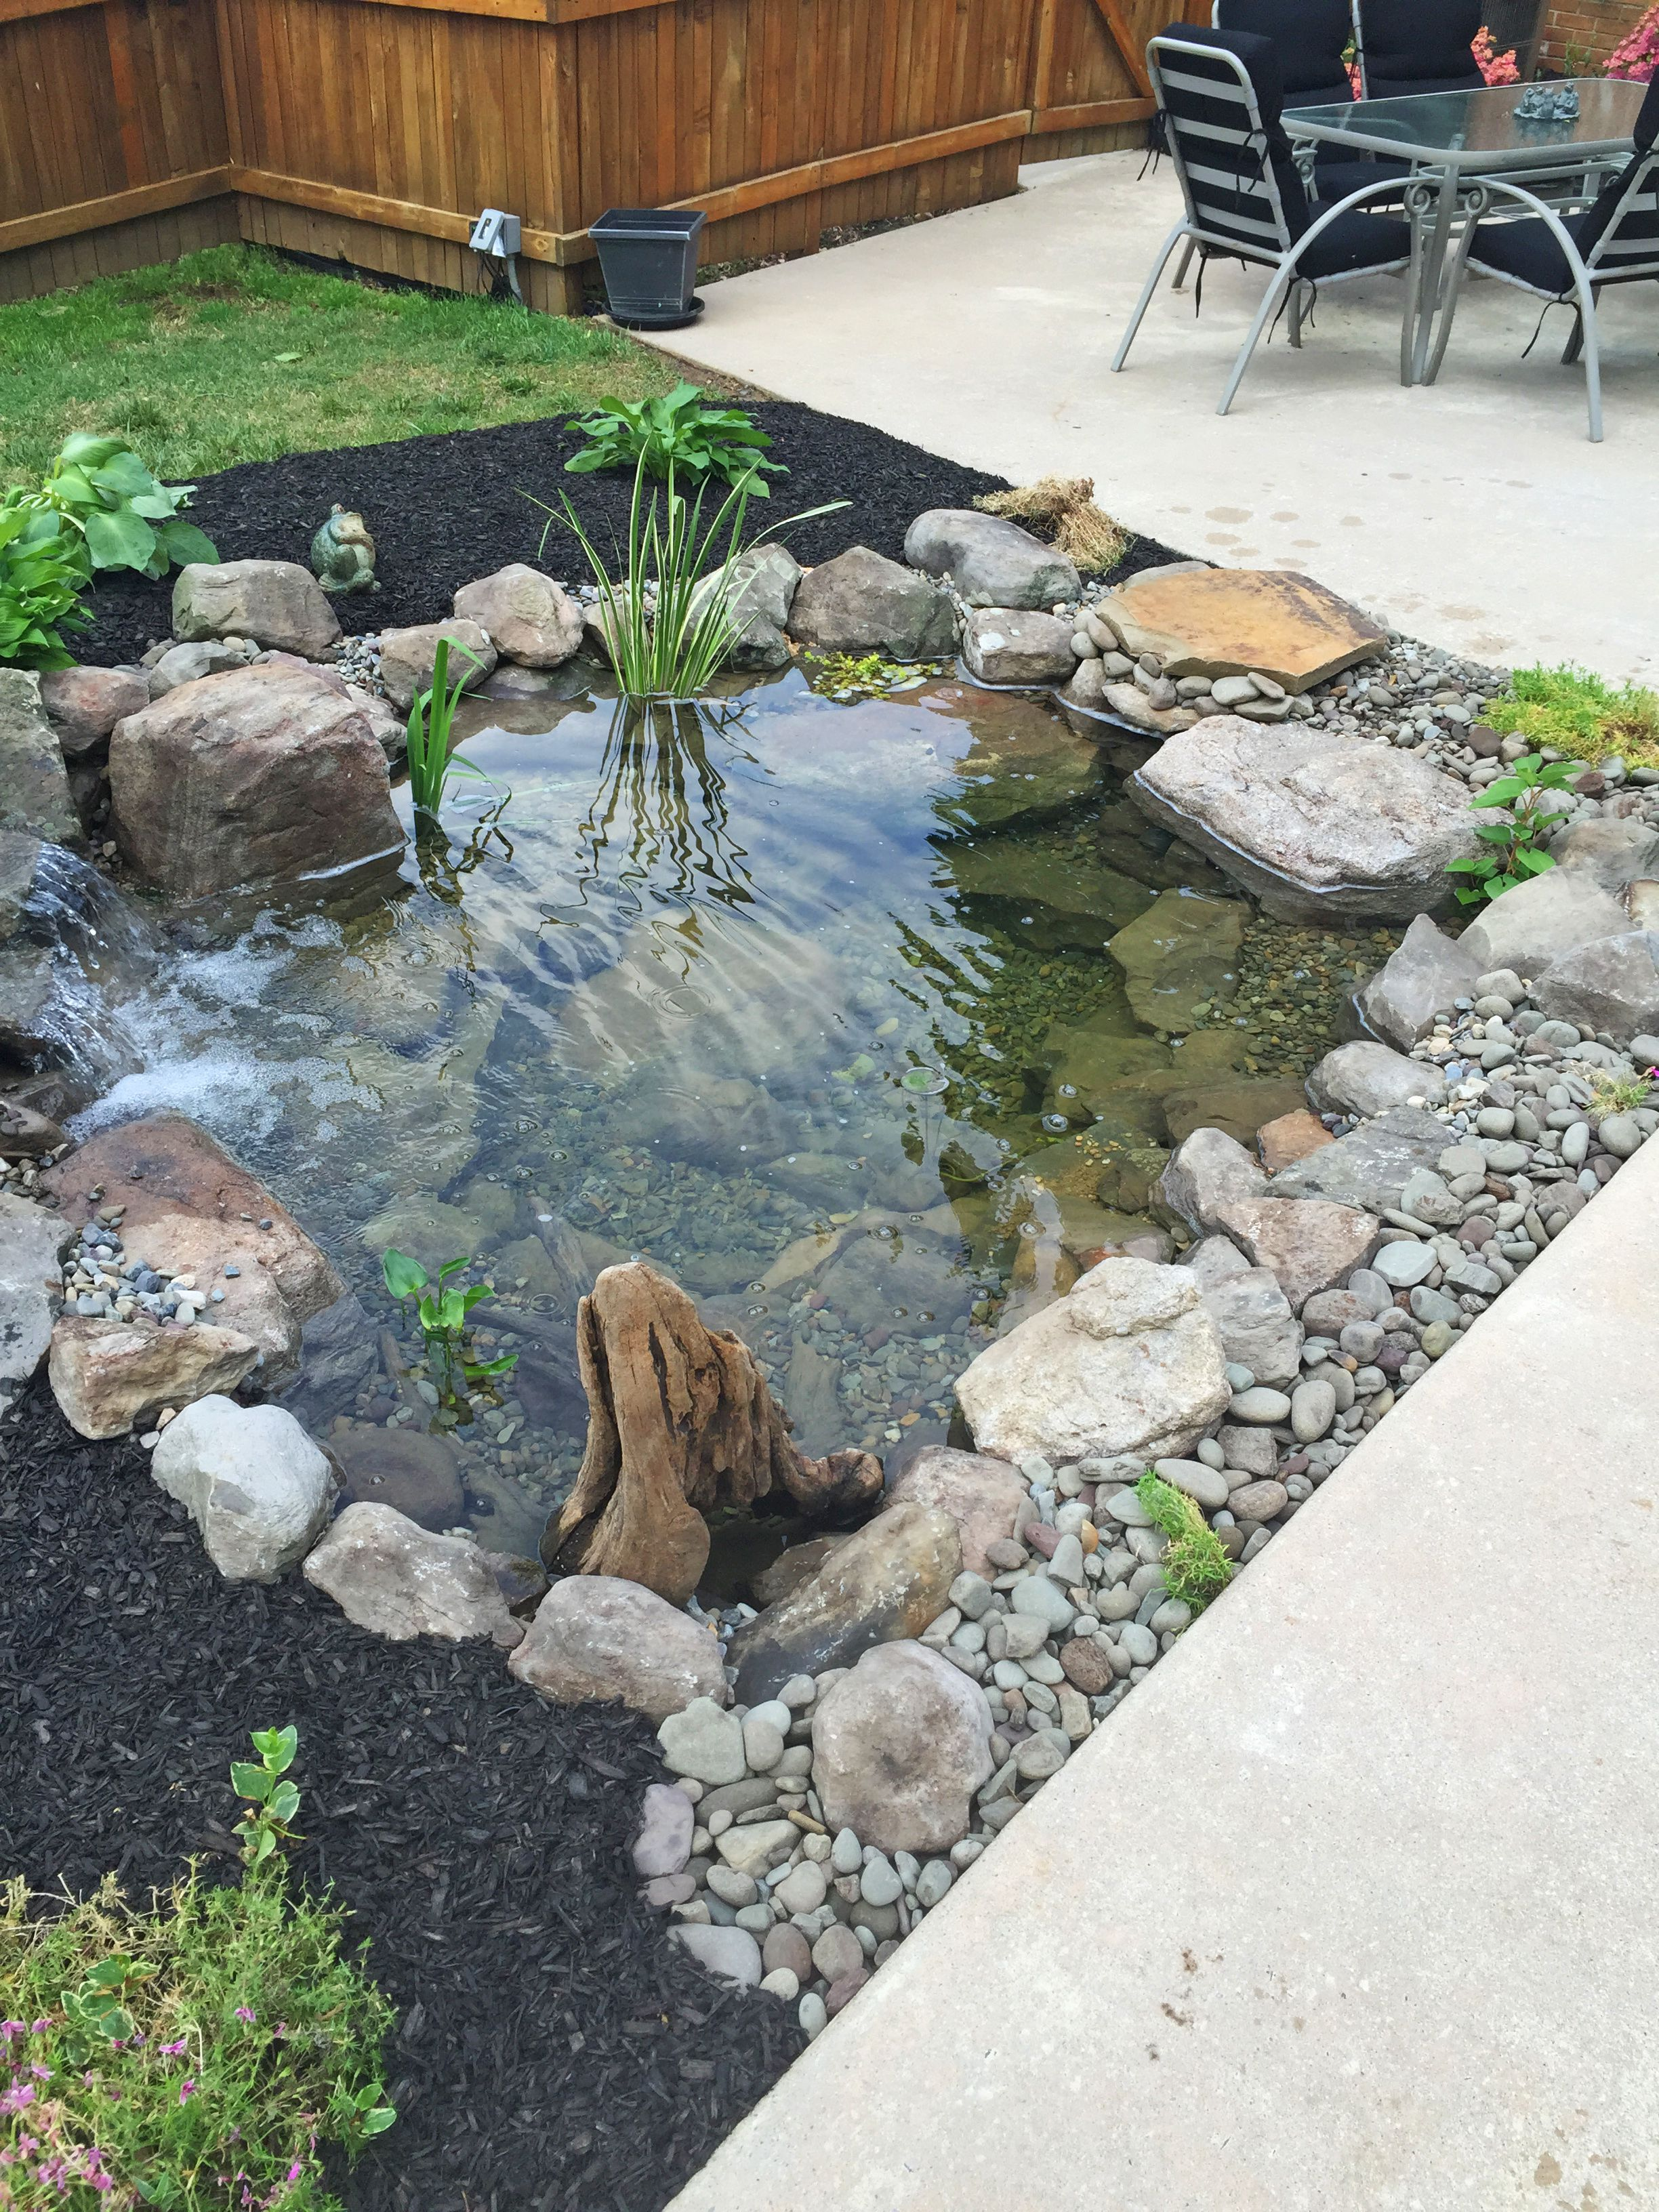 Backyard fish pond waterfall koi water garden waterscapes for Koi water garden